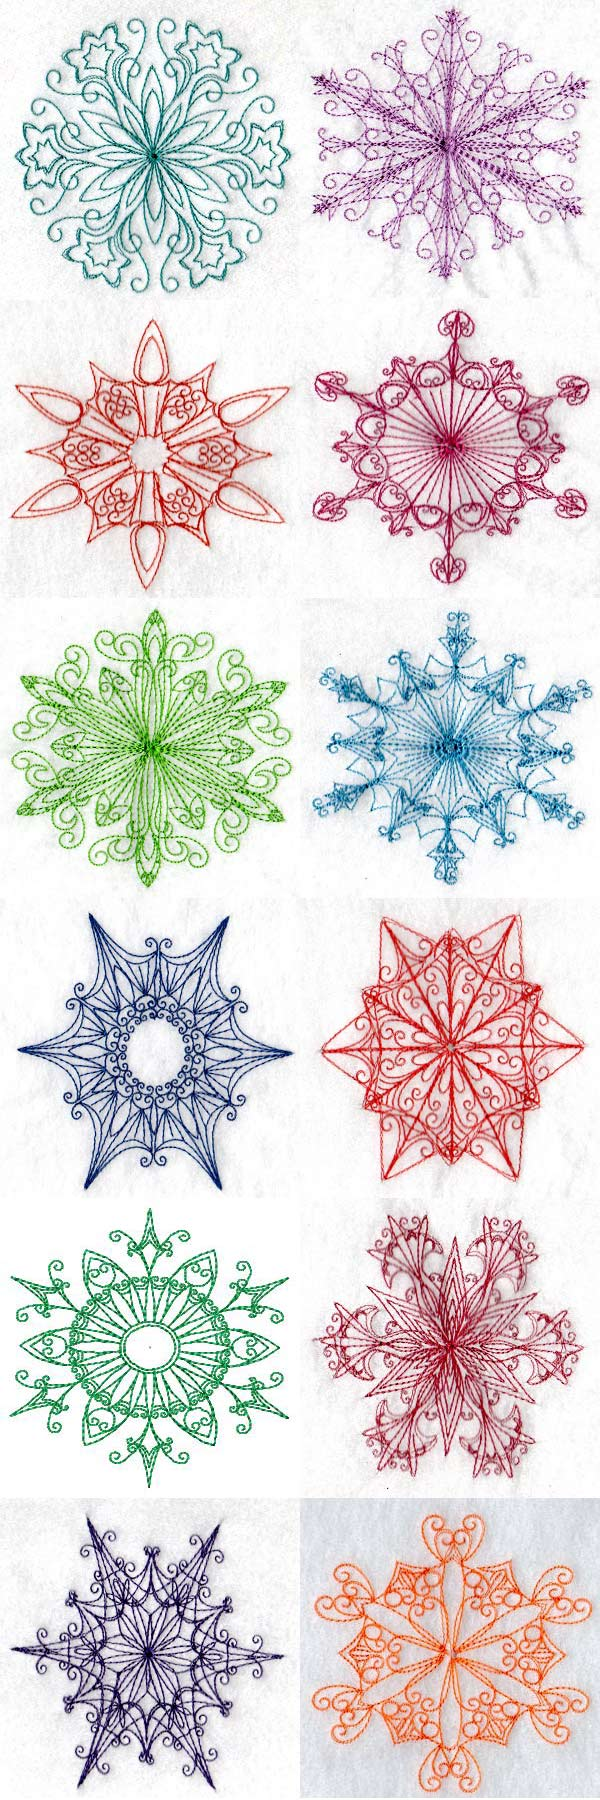 Snowflakes or Stars Embroidery Machine Design Details